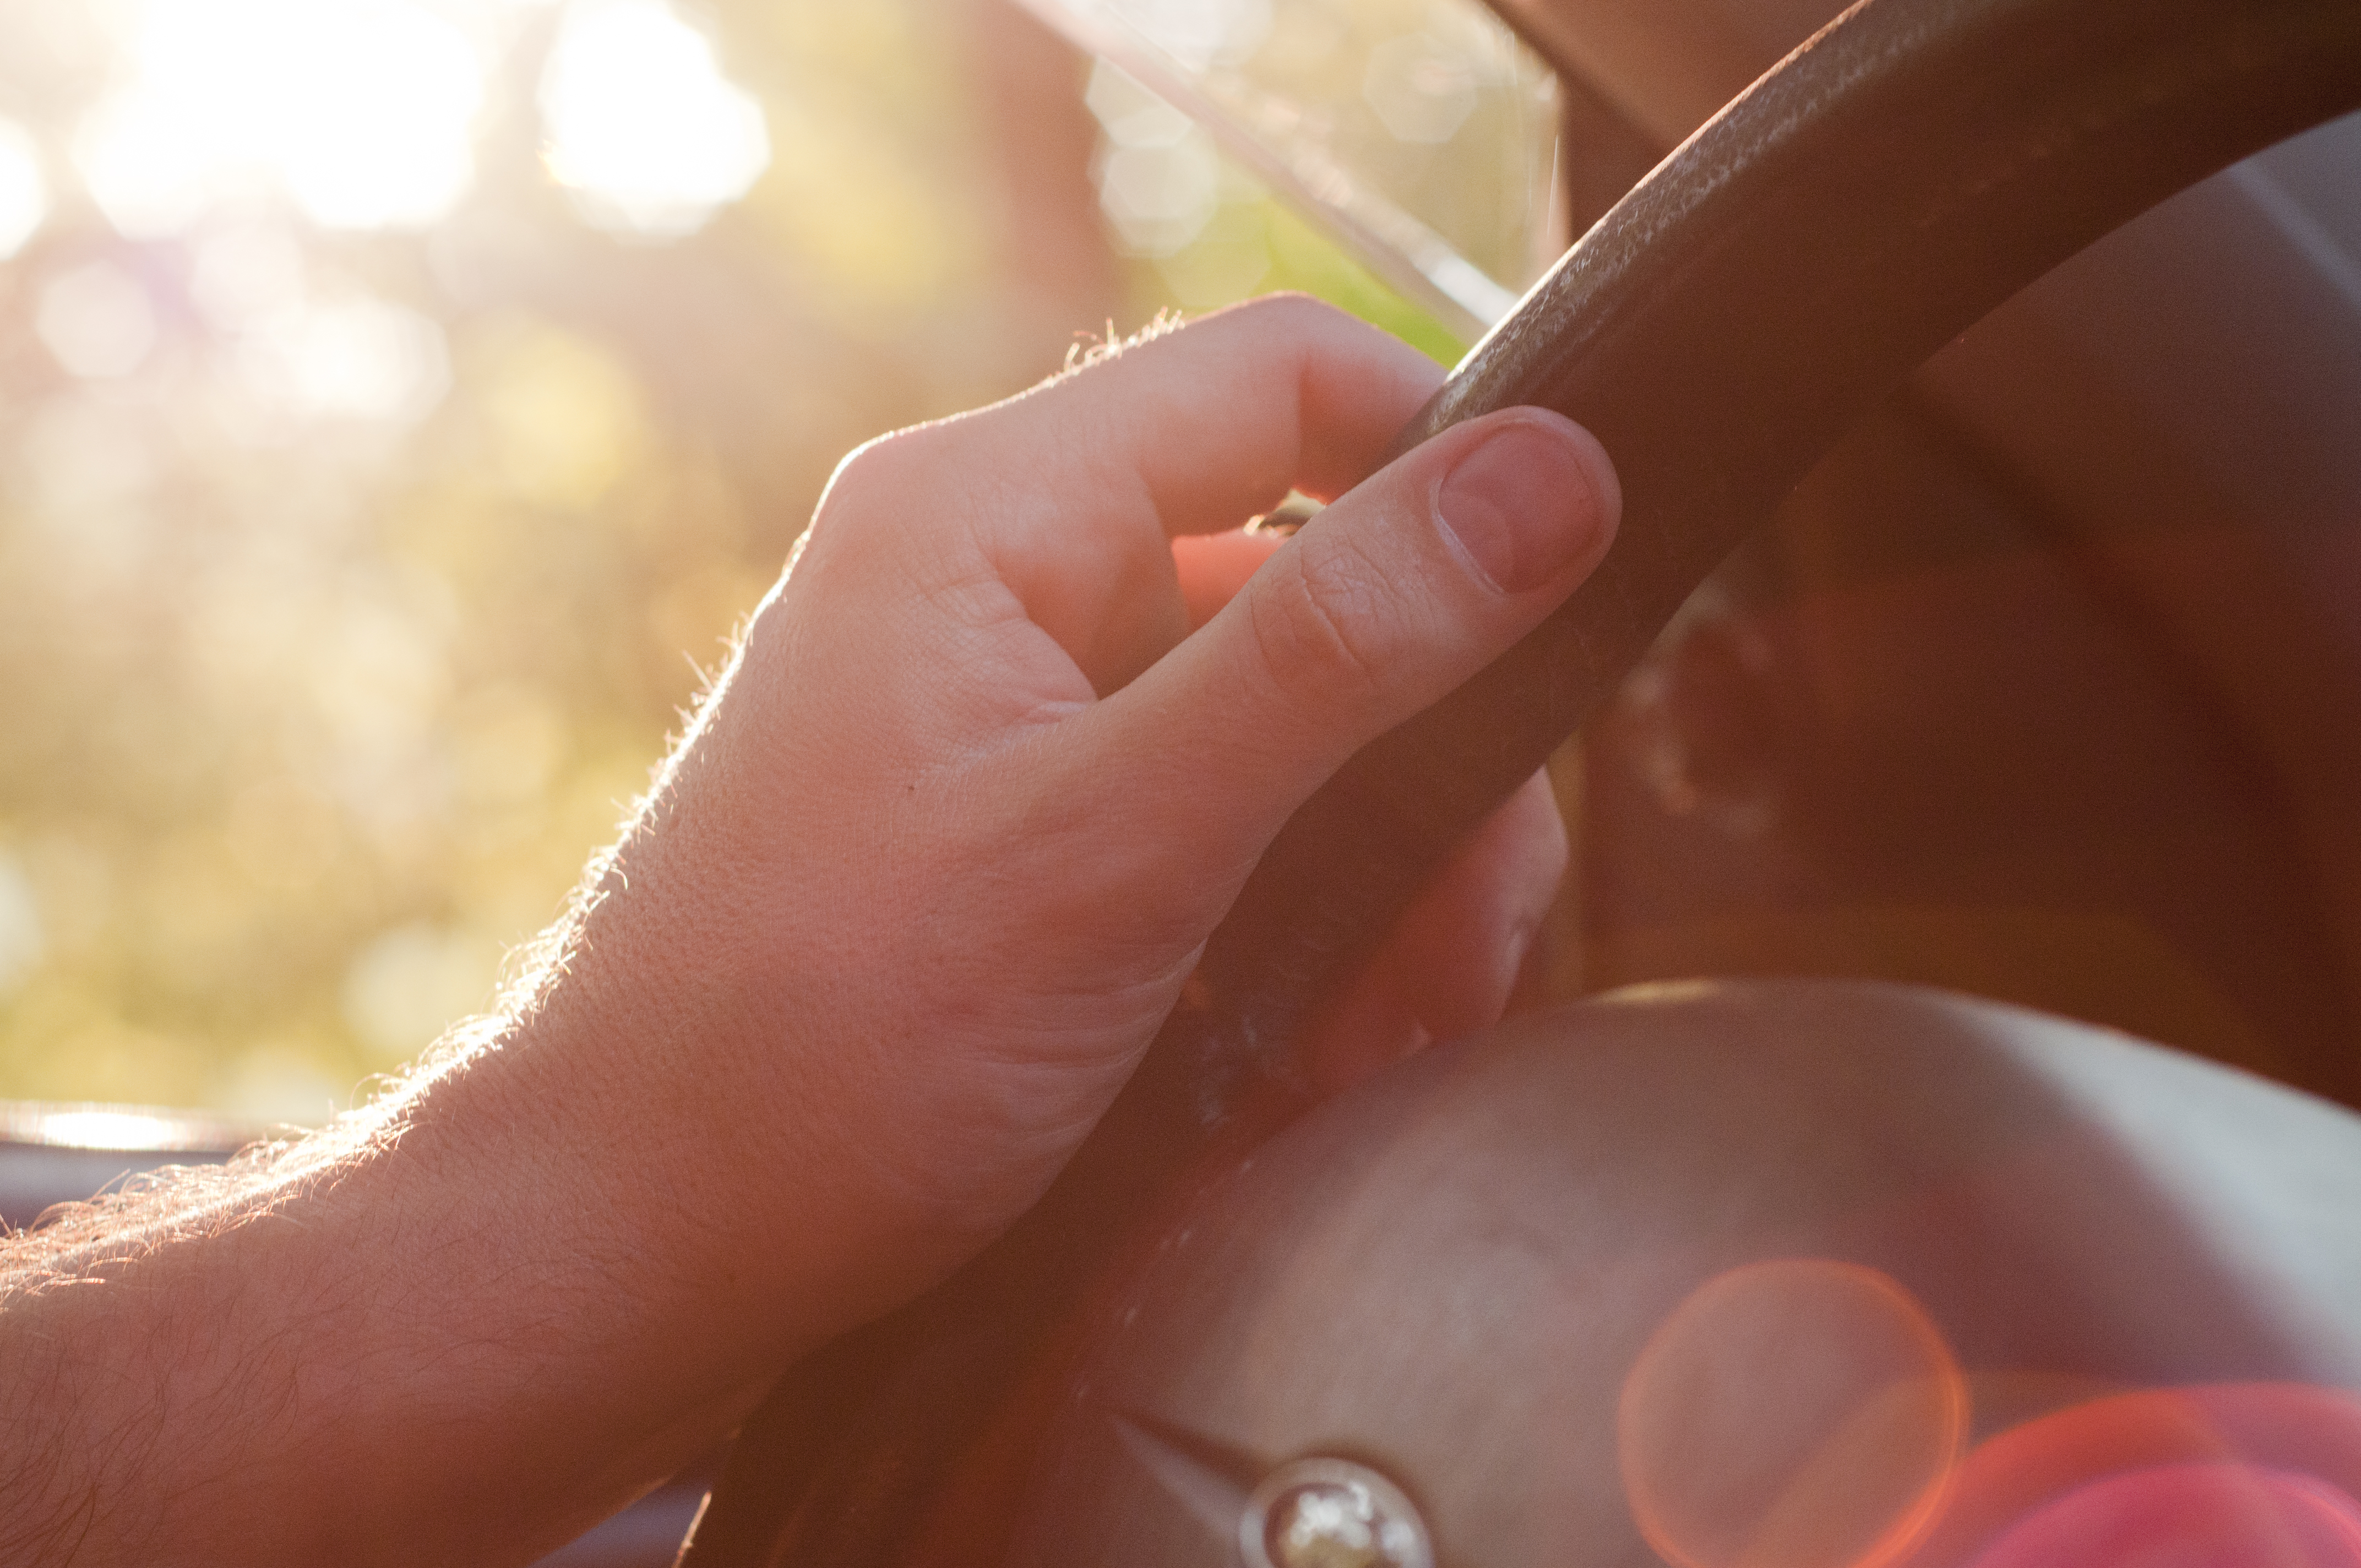 Man driving his car. Driving - young man's hand holding the steering wheel